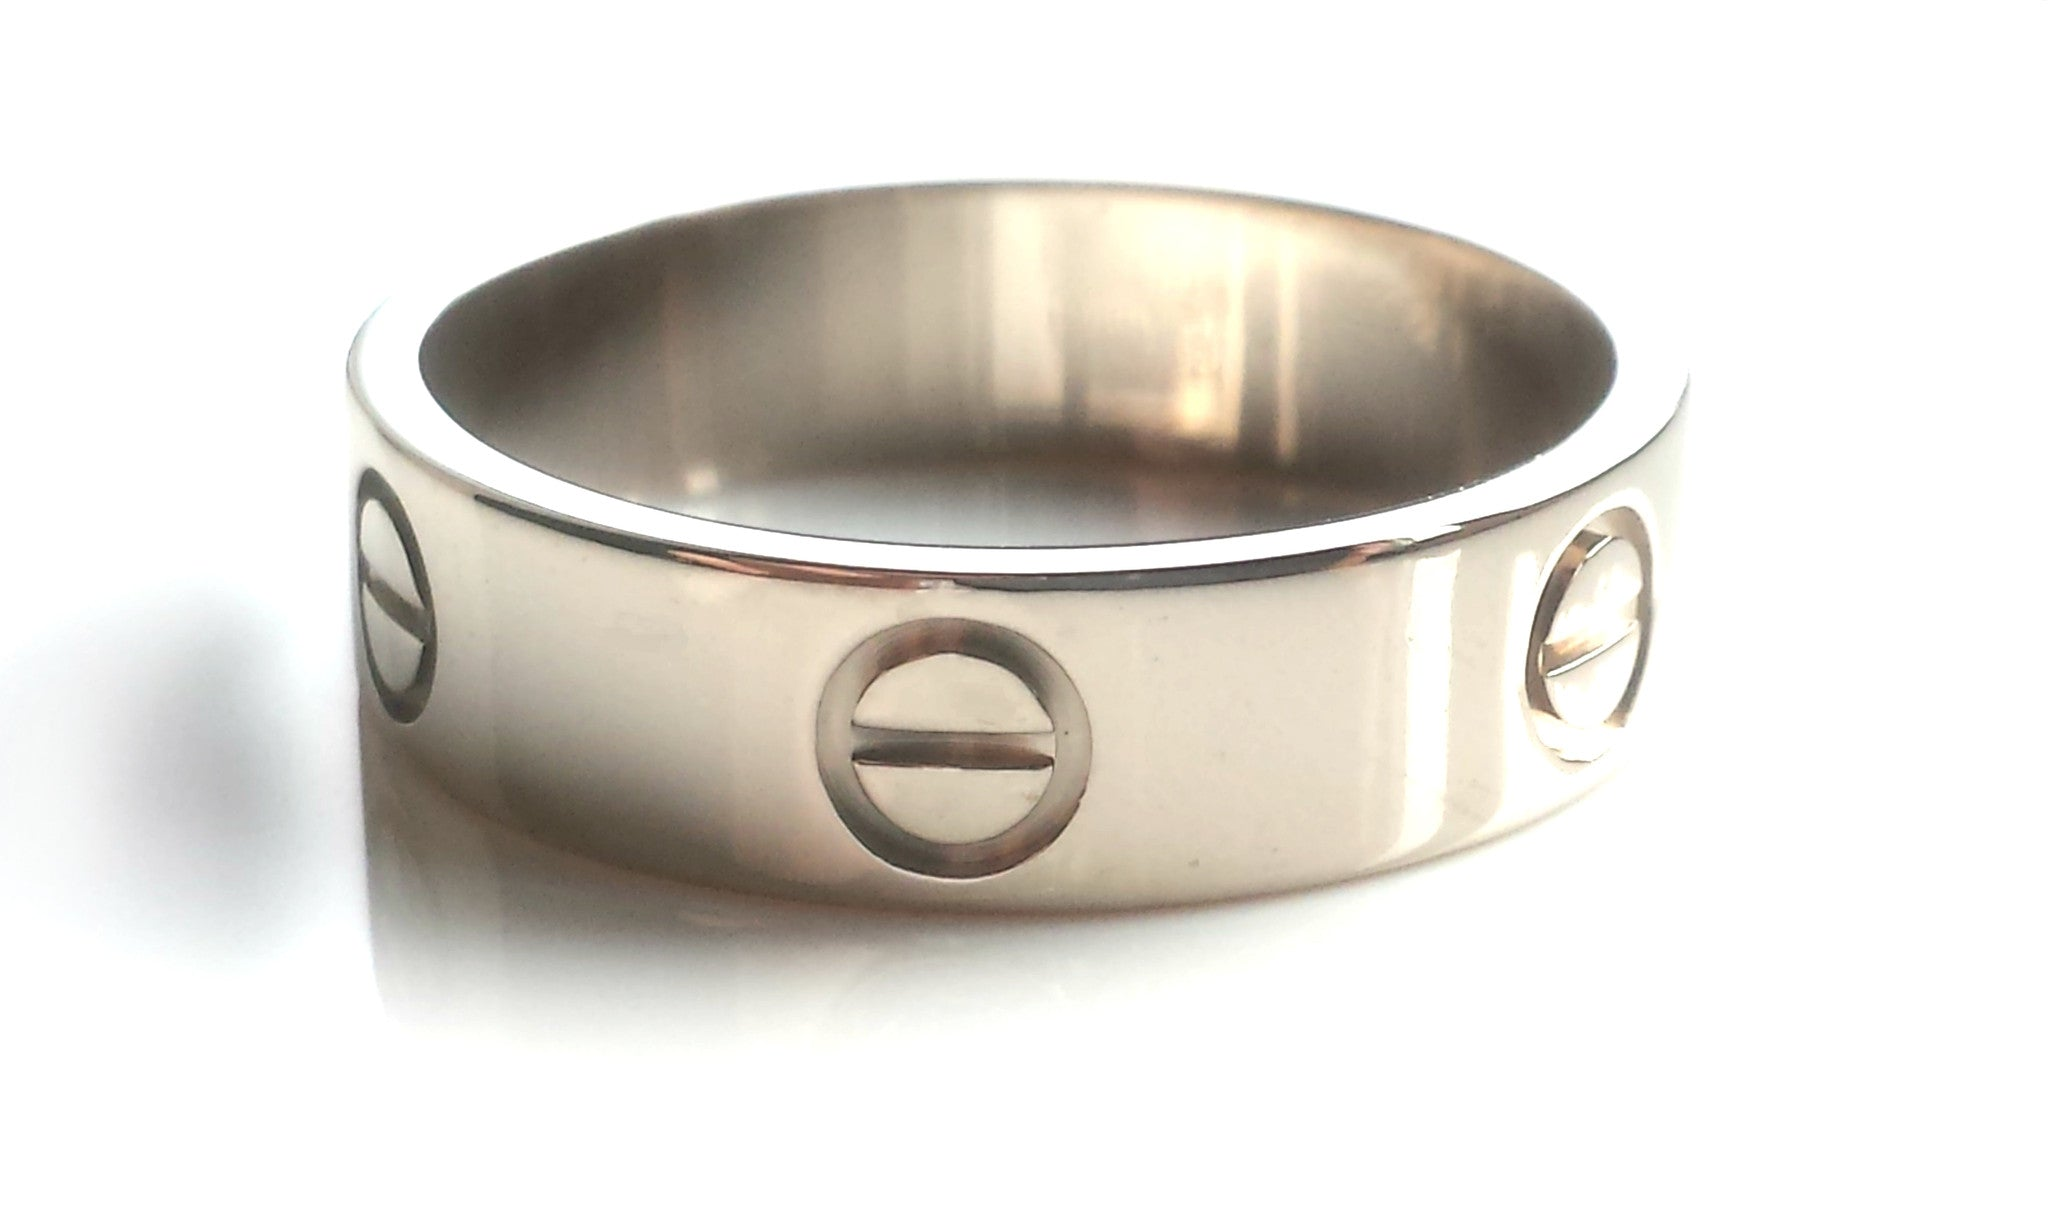 Cartier Love Ring Wedding Band In 18k White Gold 5 5mm Wide Size